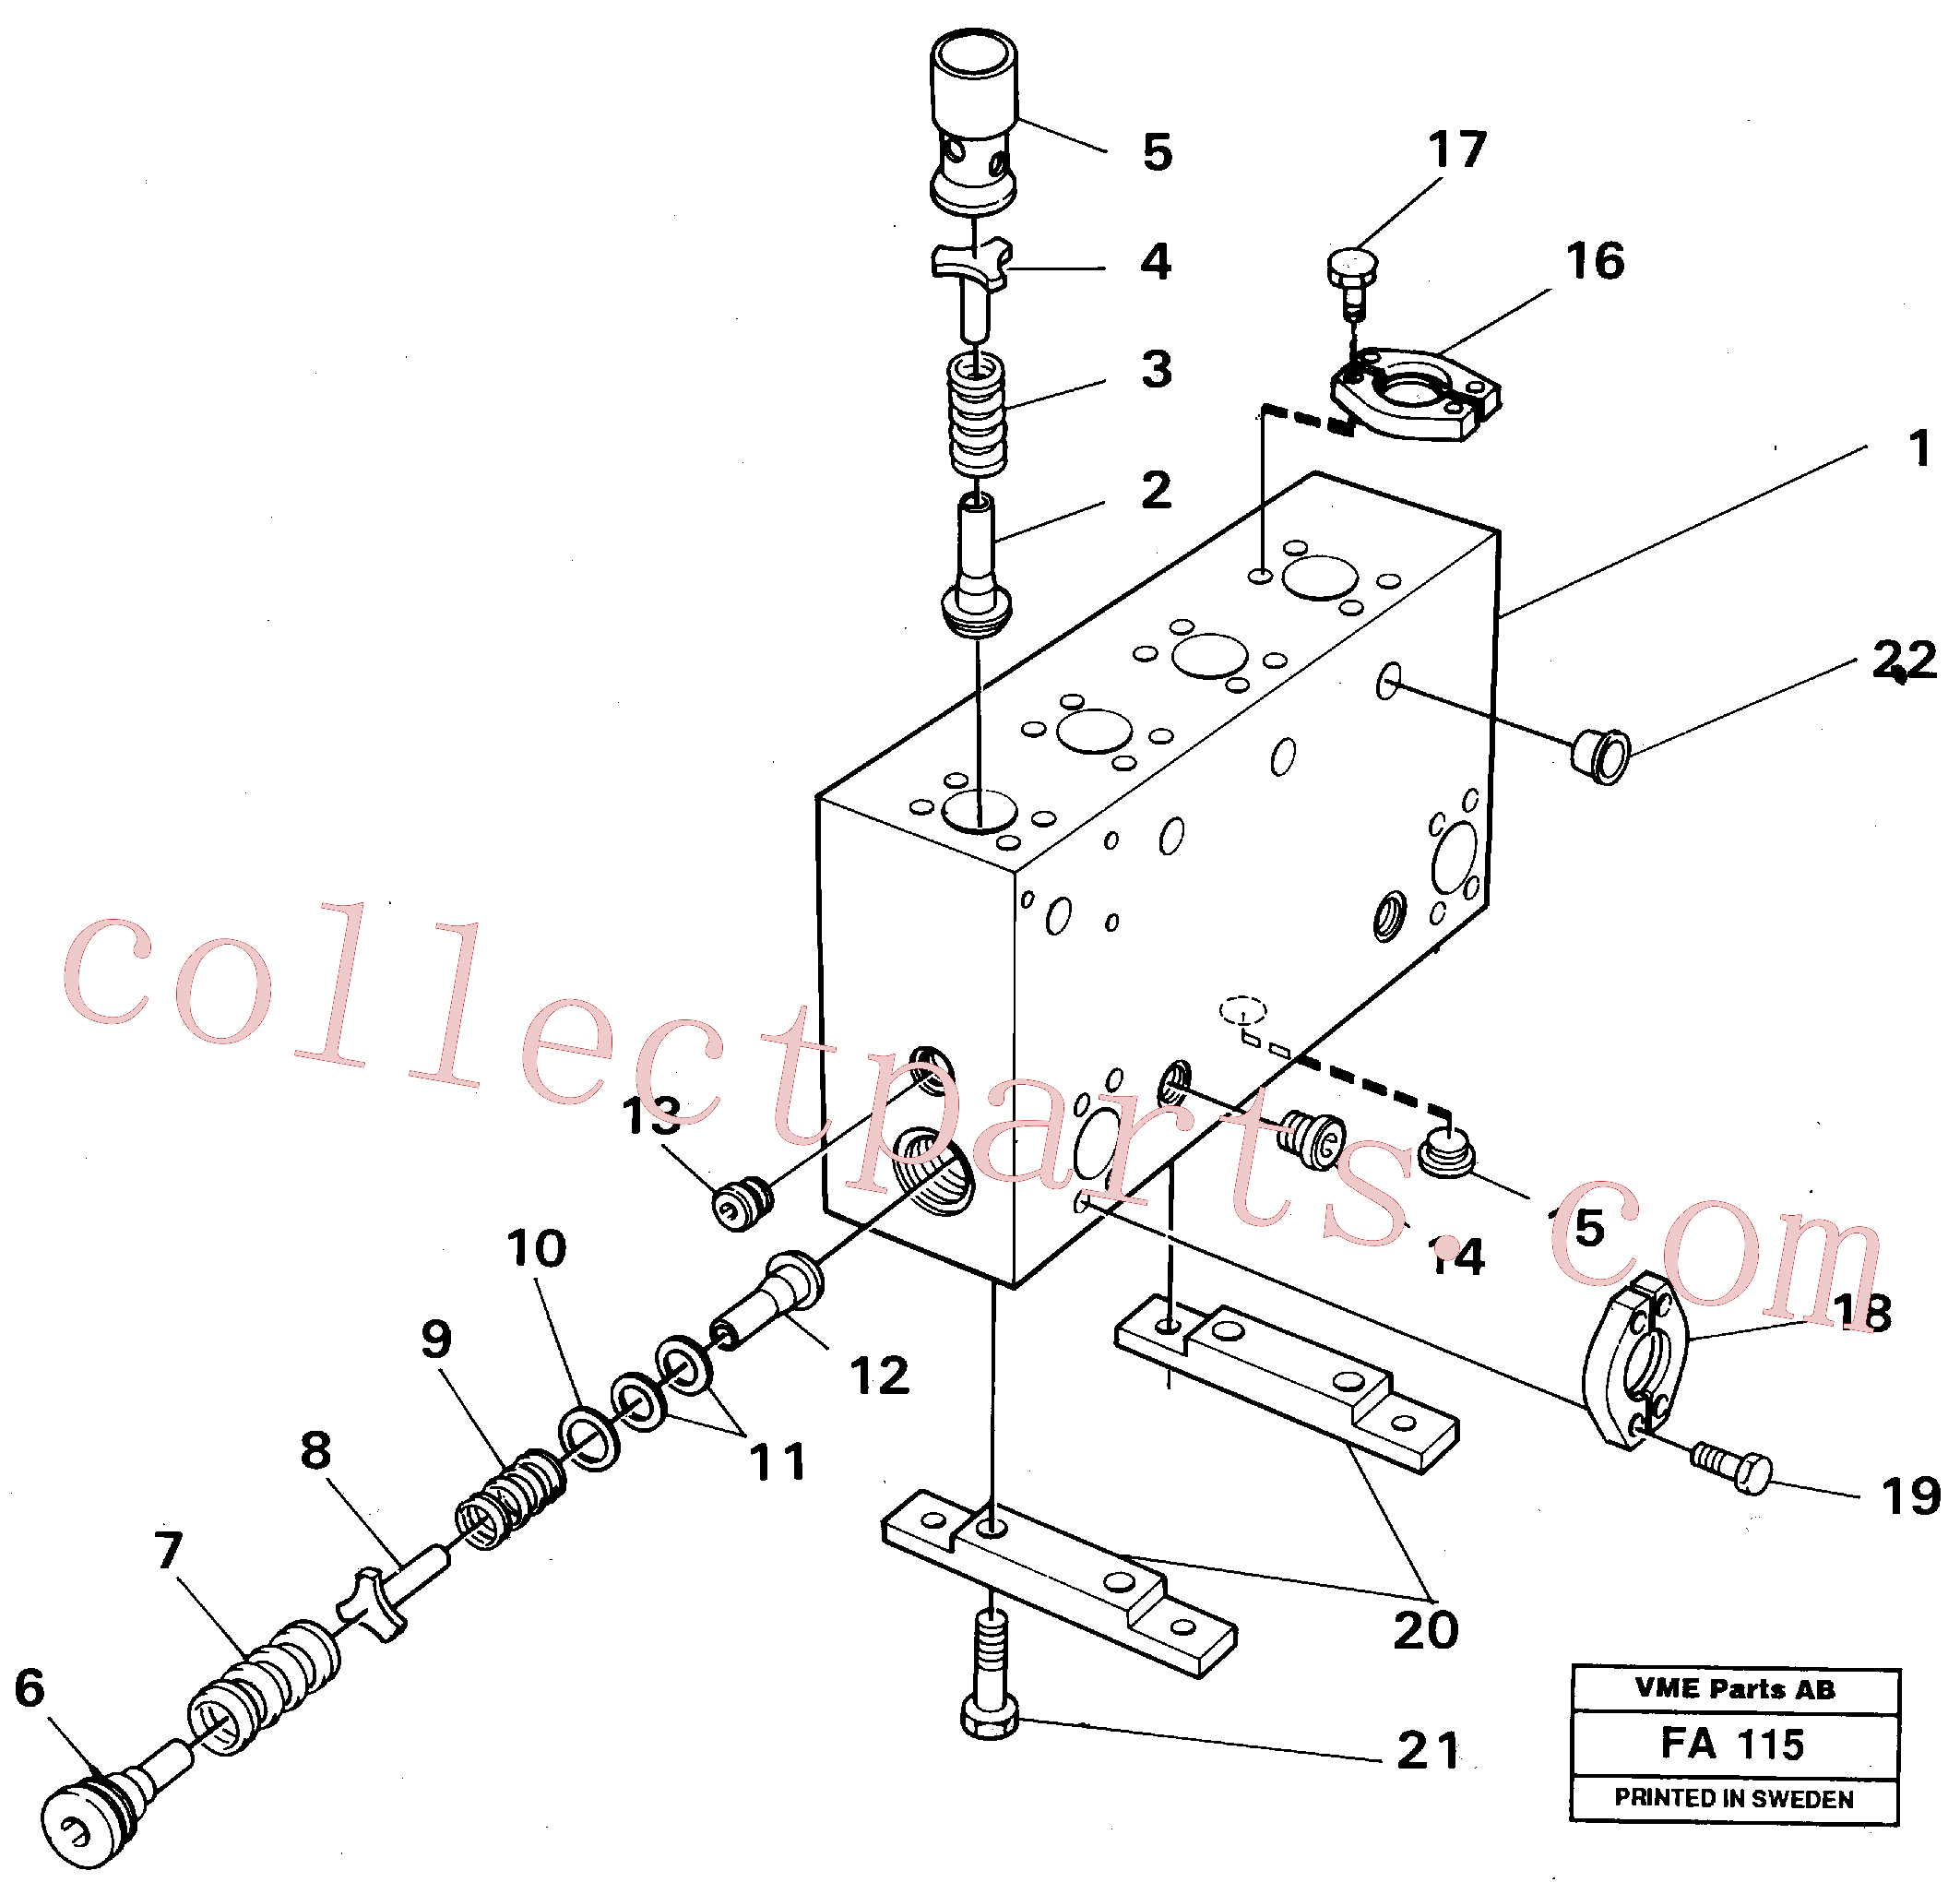 VOE14024900 for Volvo Connection board(FA115 assembly)